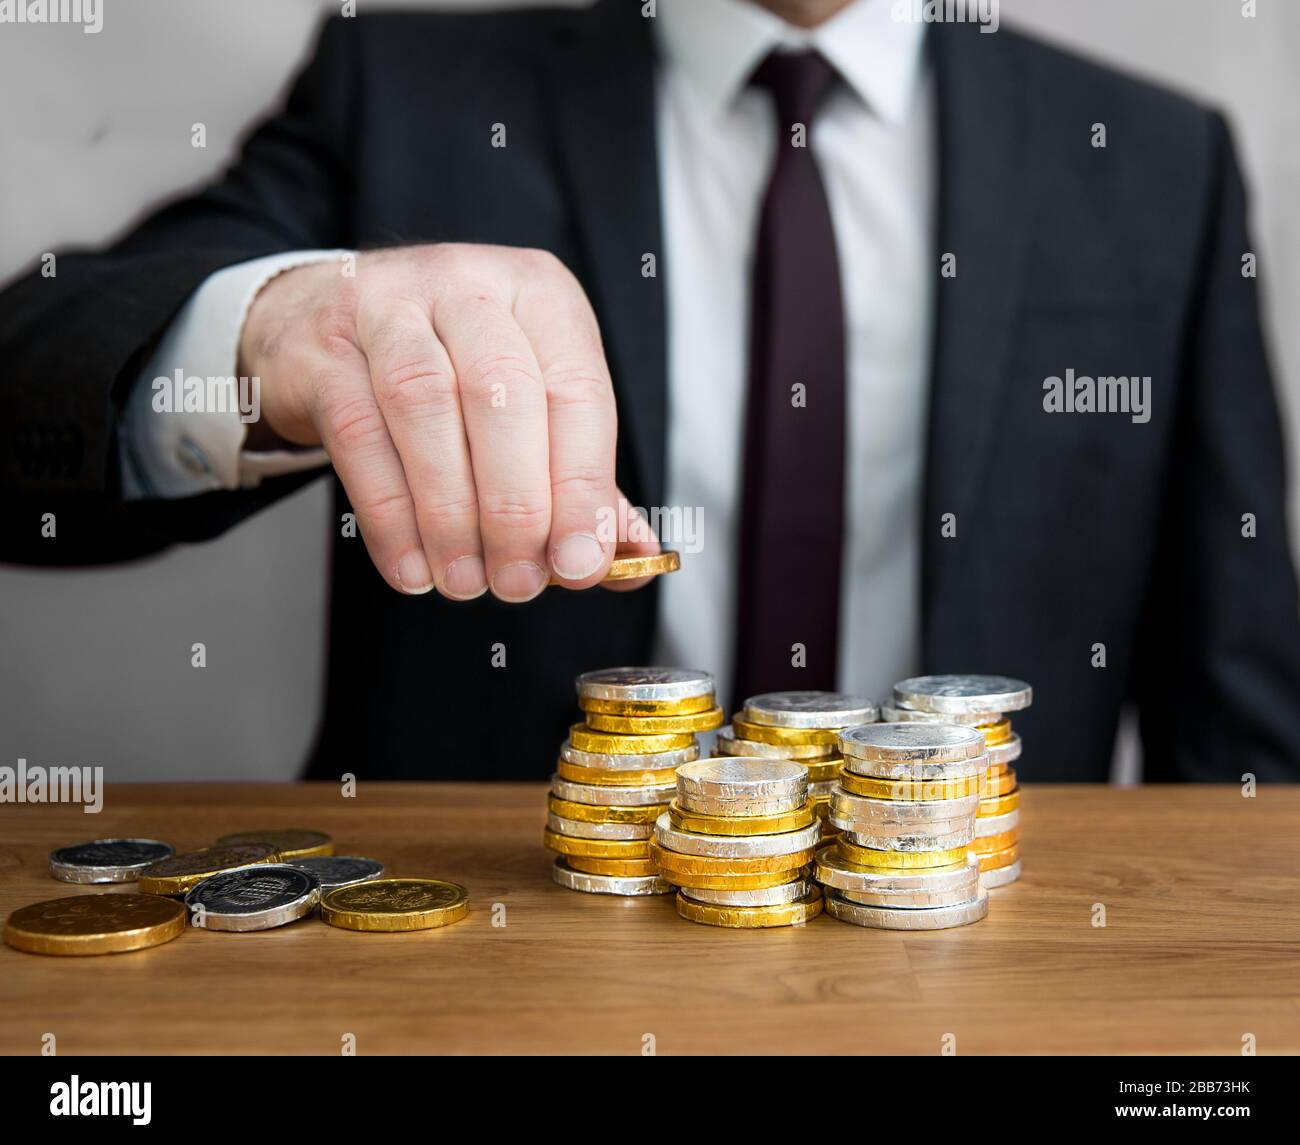 A midsection concept of a businessman with a large amount of cash counting coins into stacks to add up corporate profit and assets. Stock Photo